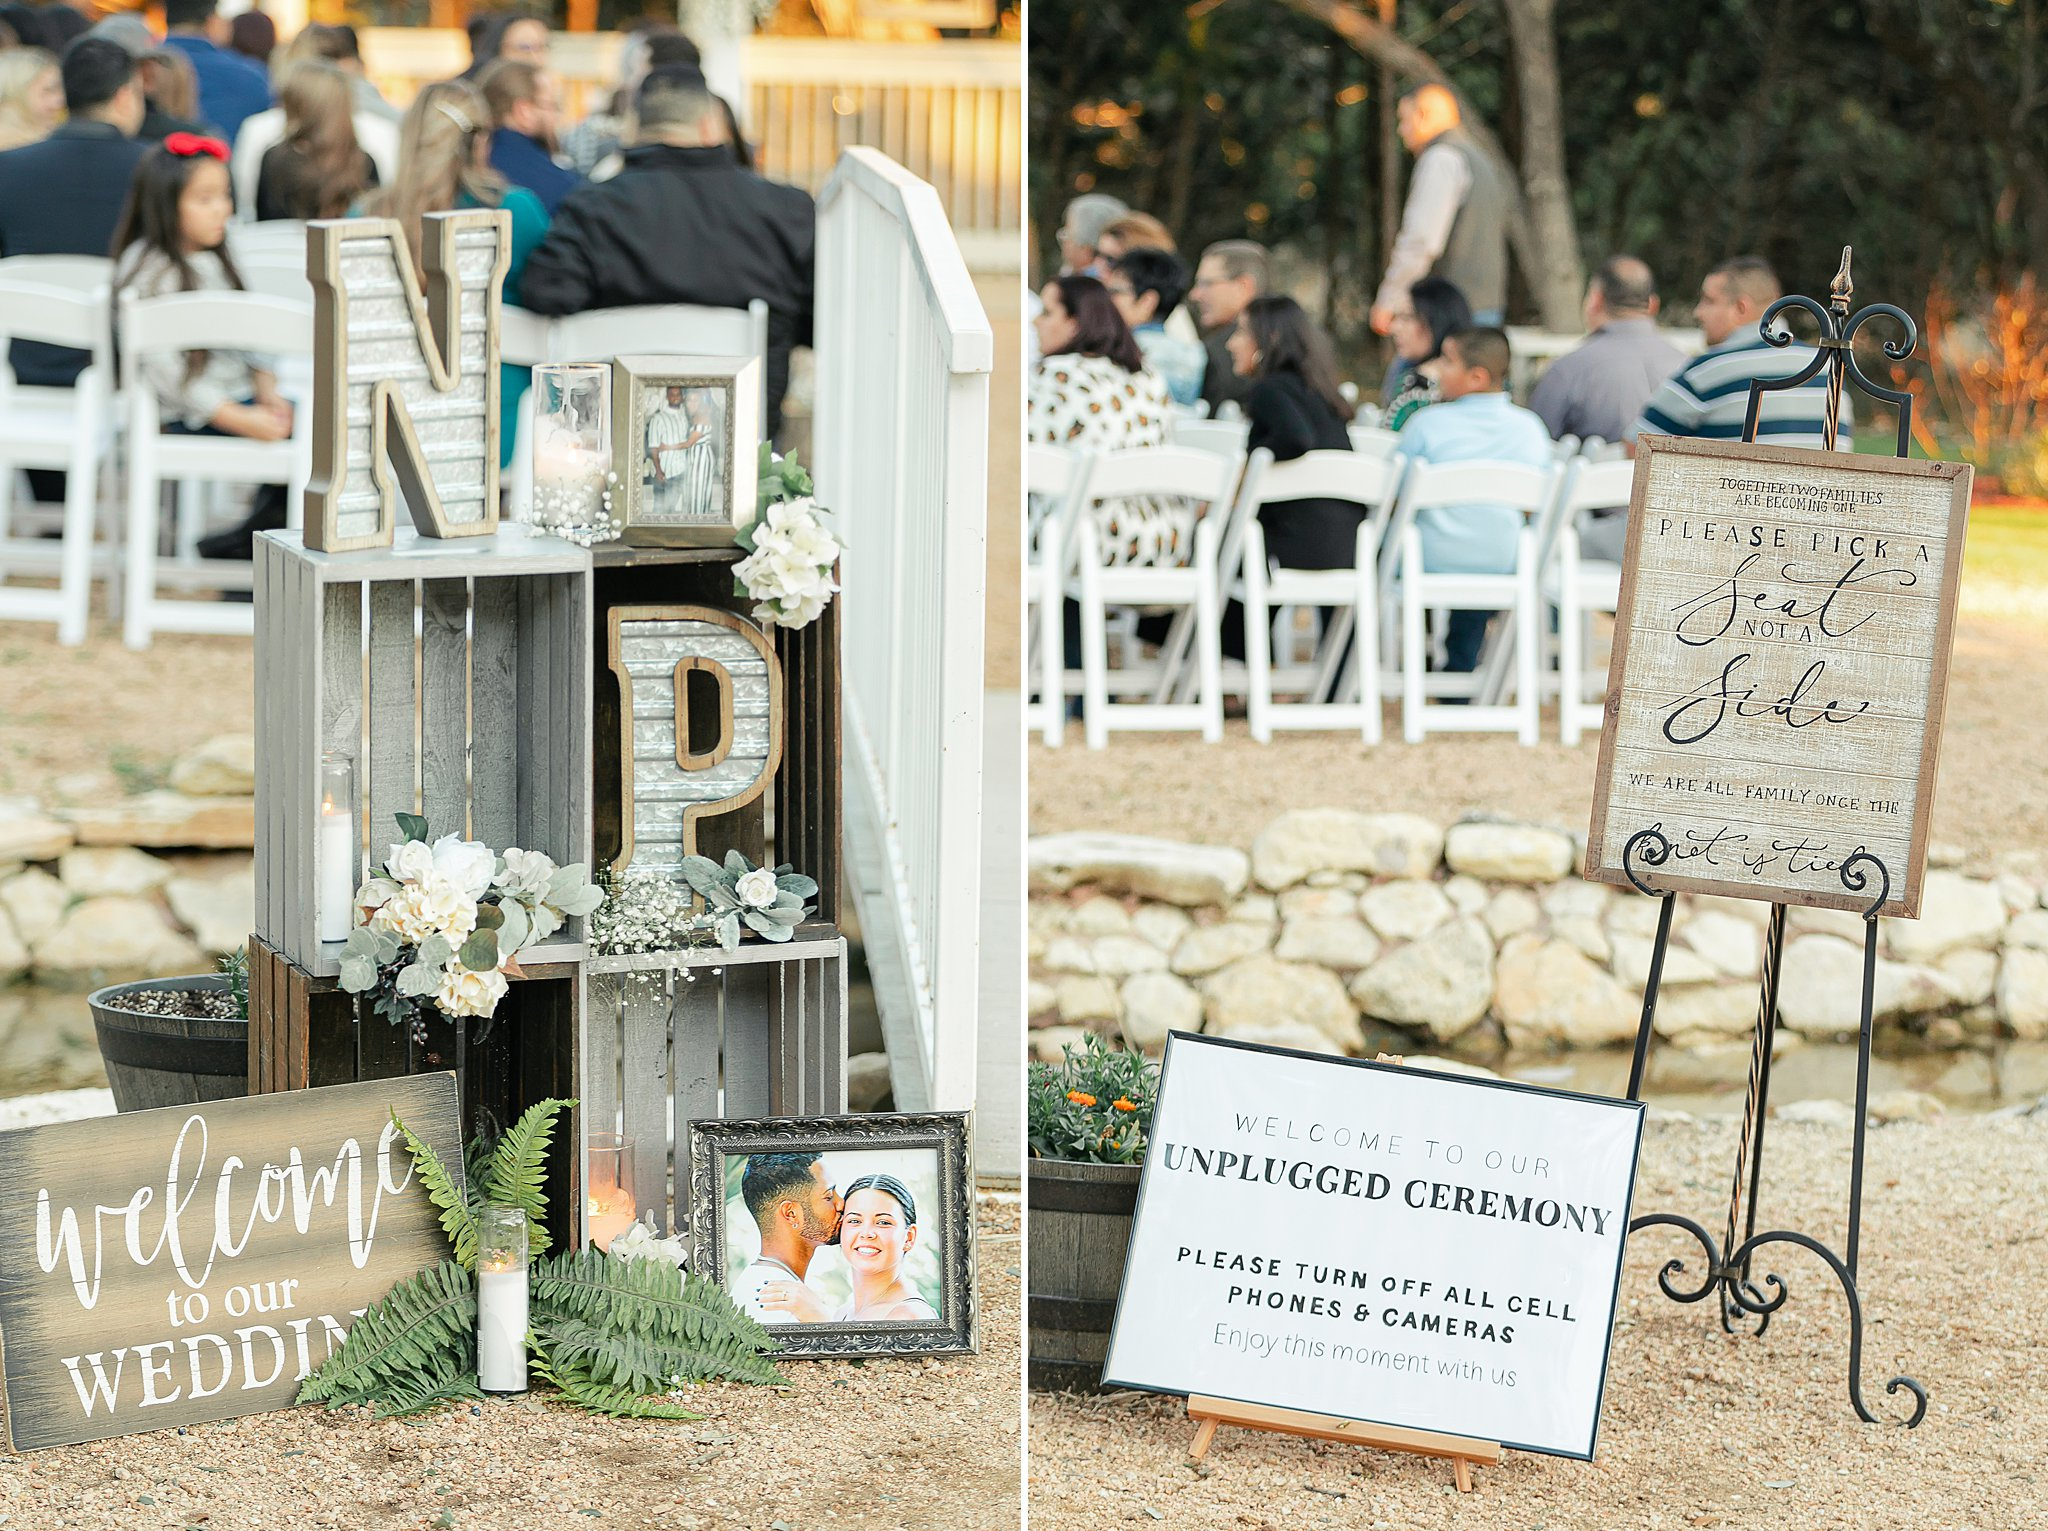 Carly-Barton-Photography-Texas-Wedding-Photographer-Western-Sky-Wedding-Event-Venue-Emerald-Green-Theme_0008.jpg